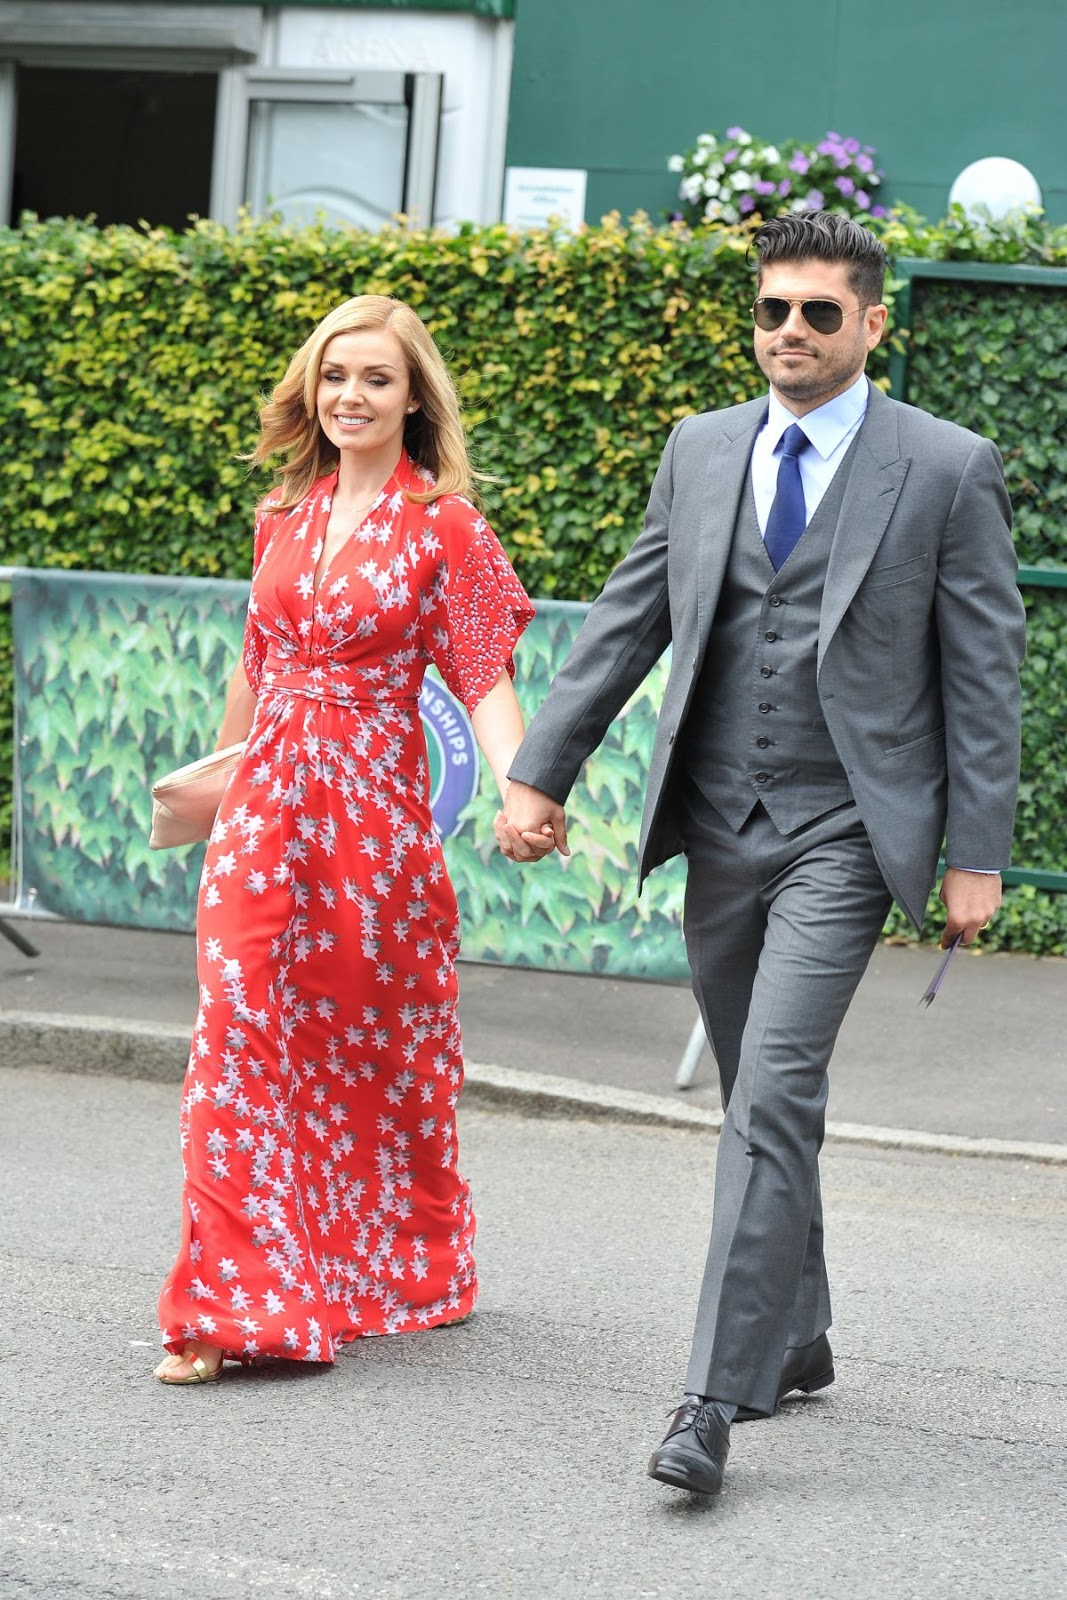 HQ Photos of Welsh Singer Katherine Jenkins out with husband in London